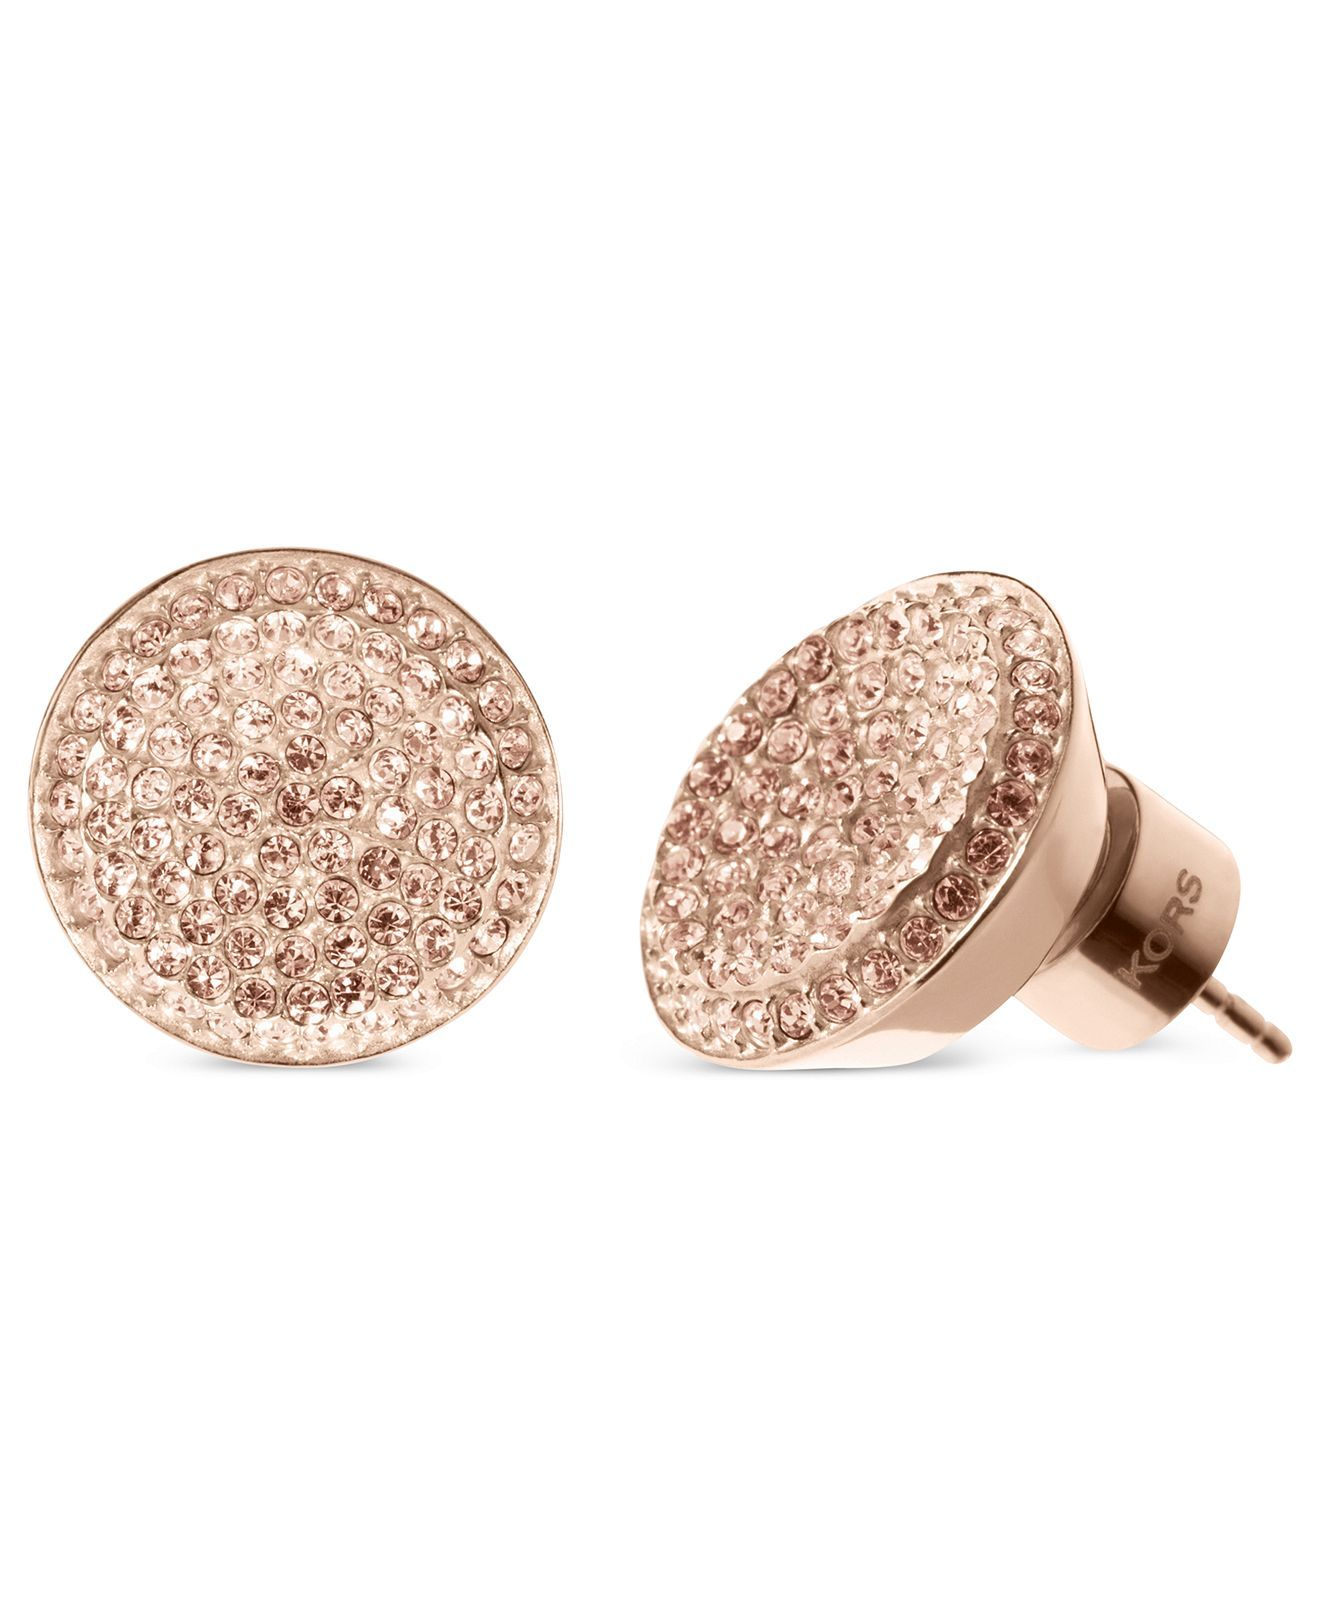 Michael Kors Earrings Rose GoldTone Concave Glass Pave Stud